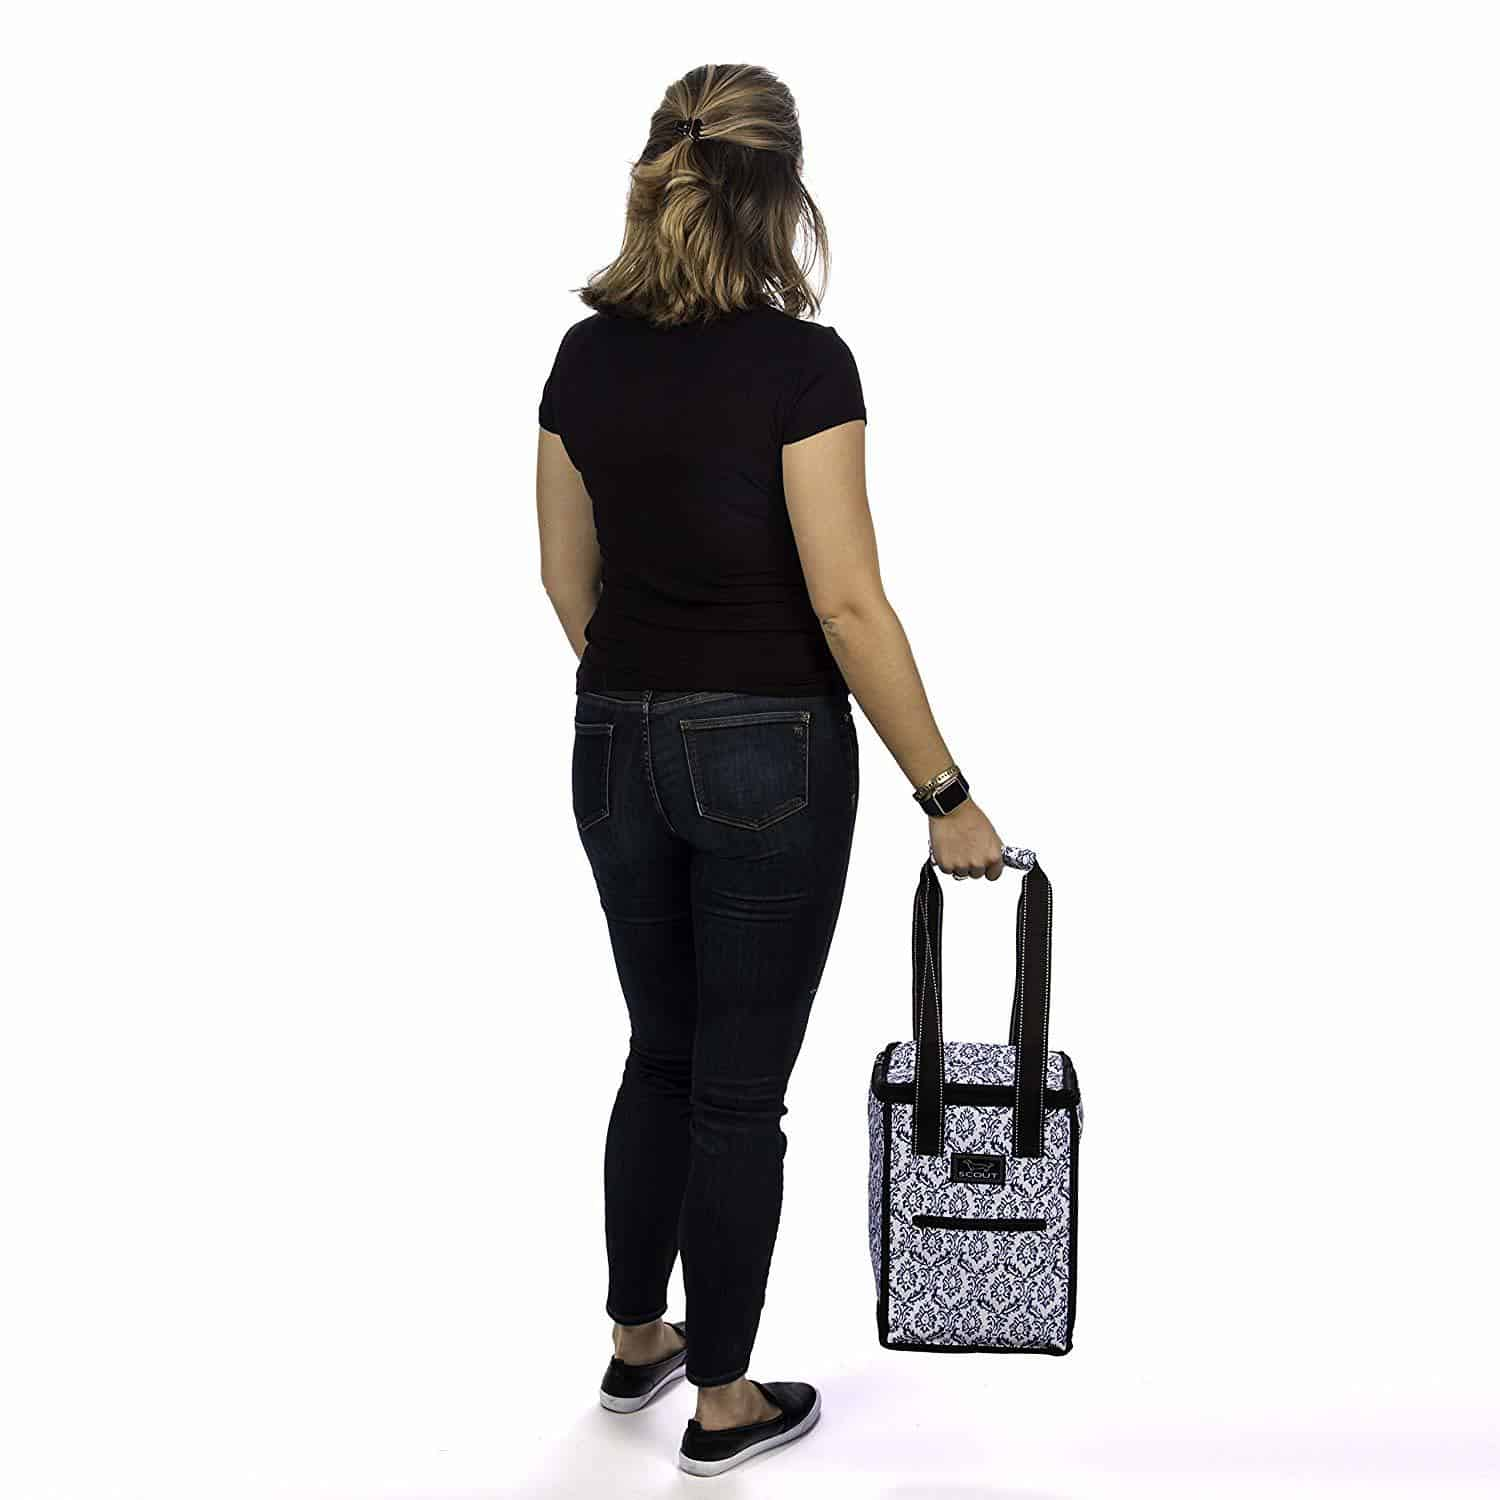 Scout Bags The Pleasure Chest Cooler Bag